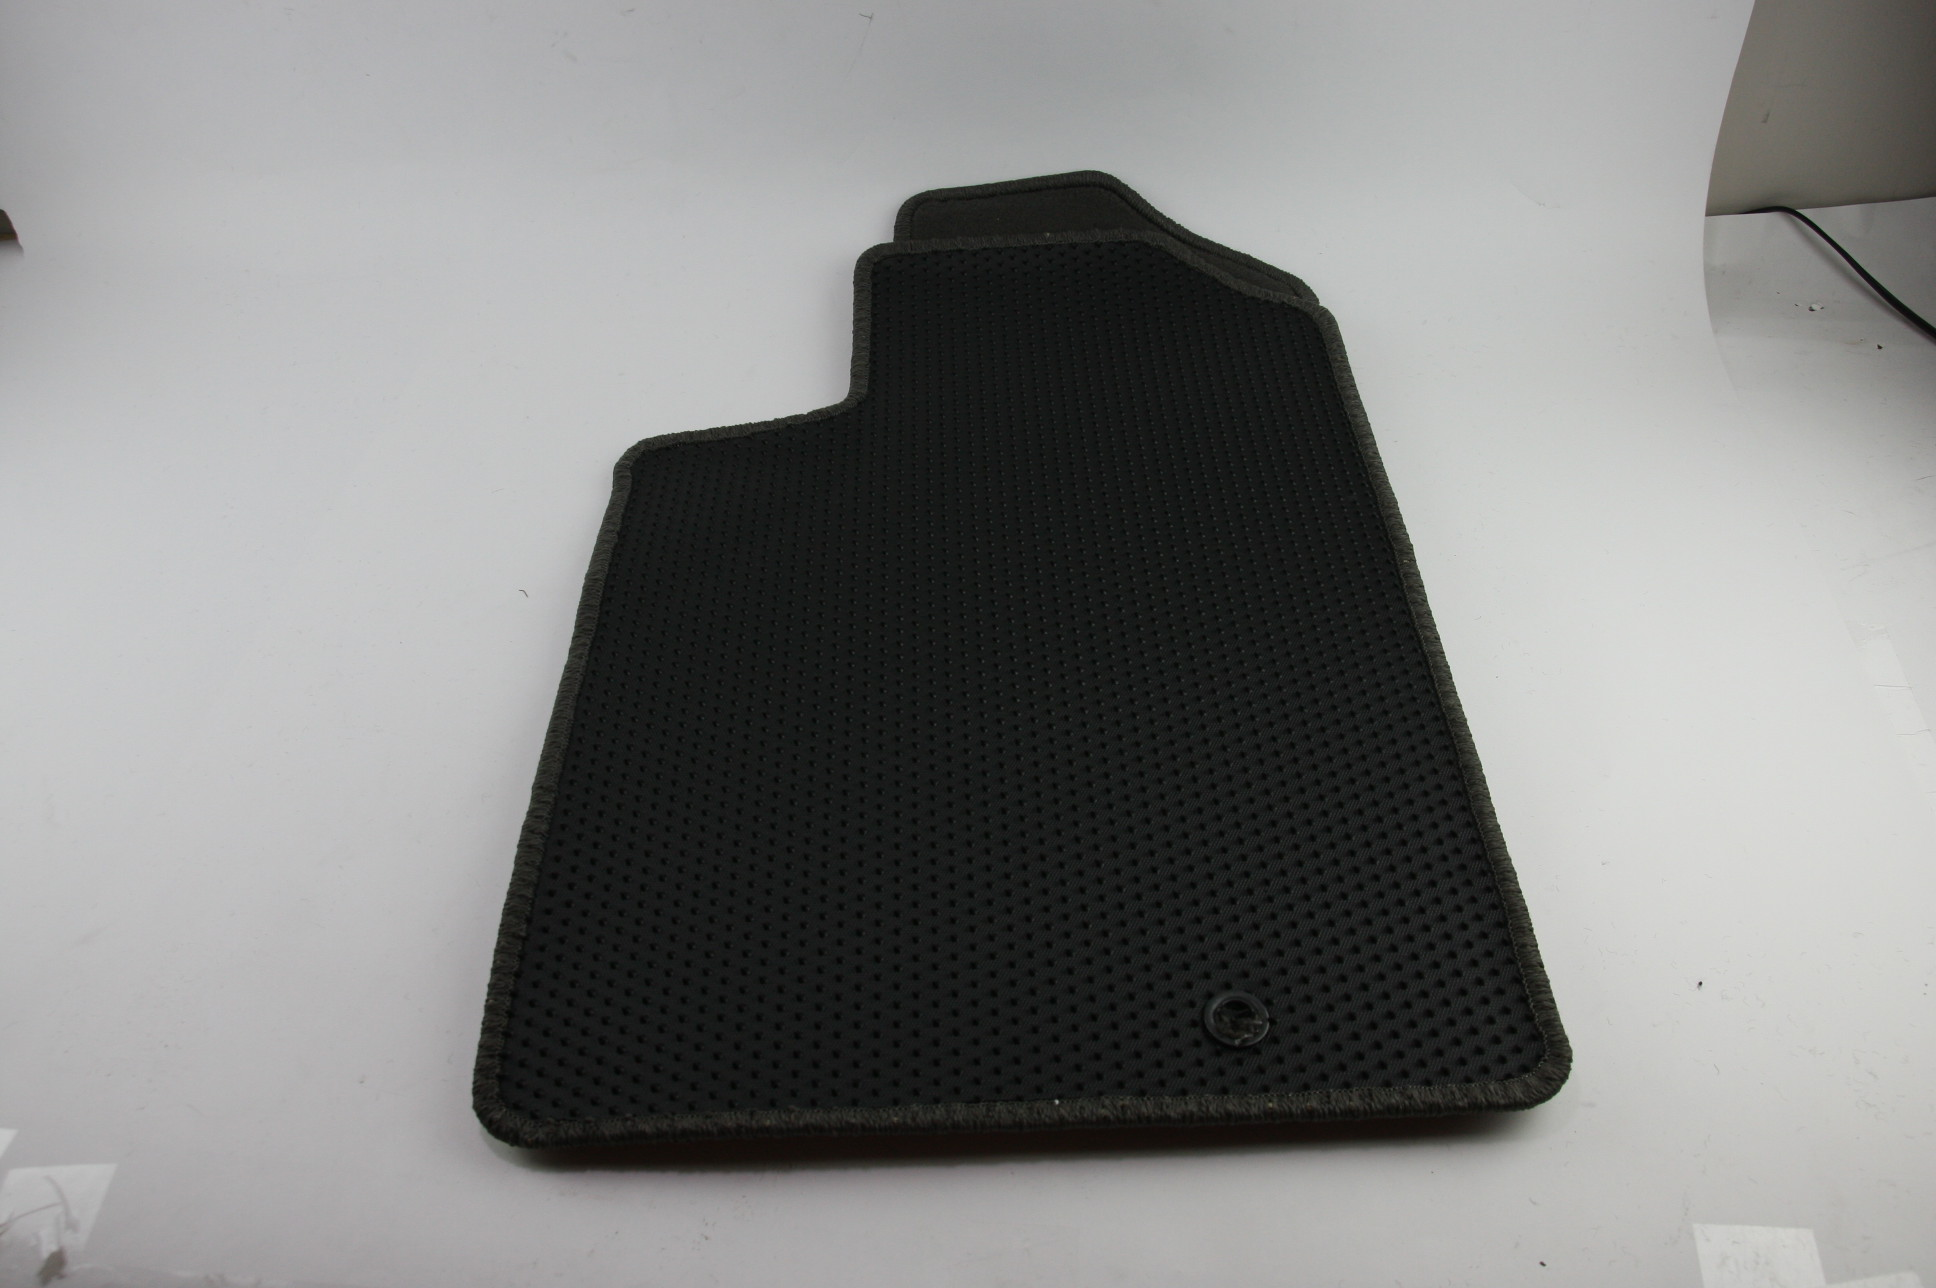 New OEM Mopar 82209560 06-08 Dodge Ram 1500 Front Carpeted Floor Mats Dark Khaki - image 6